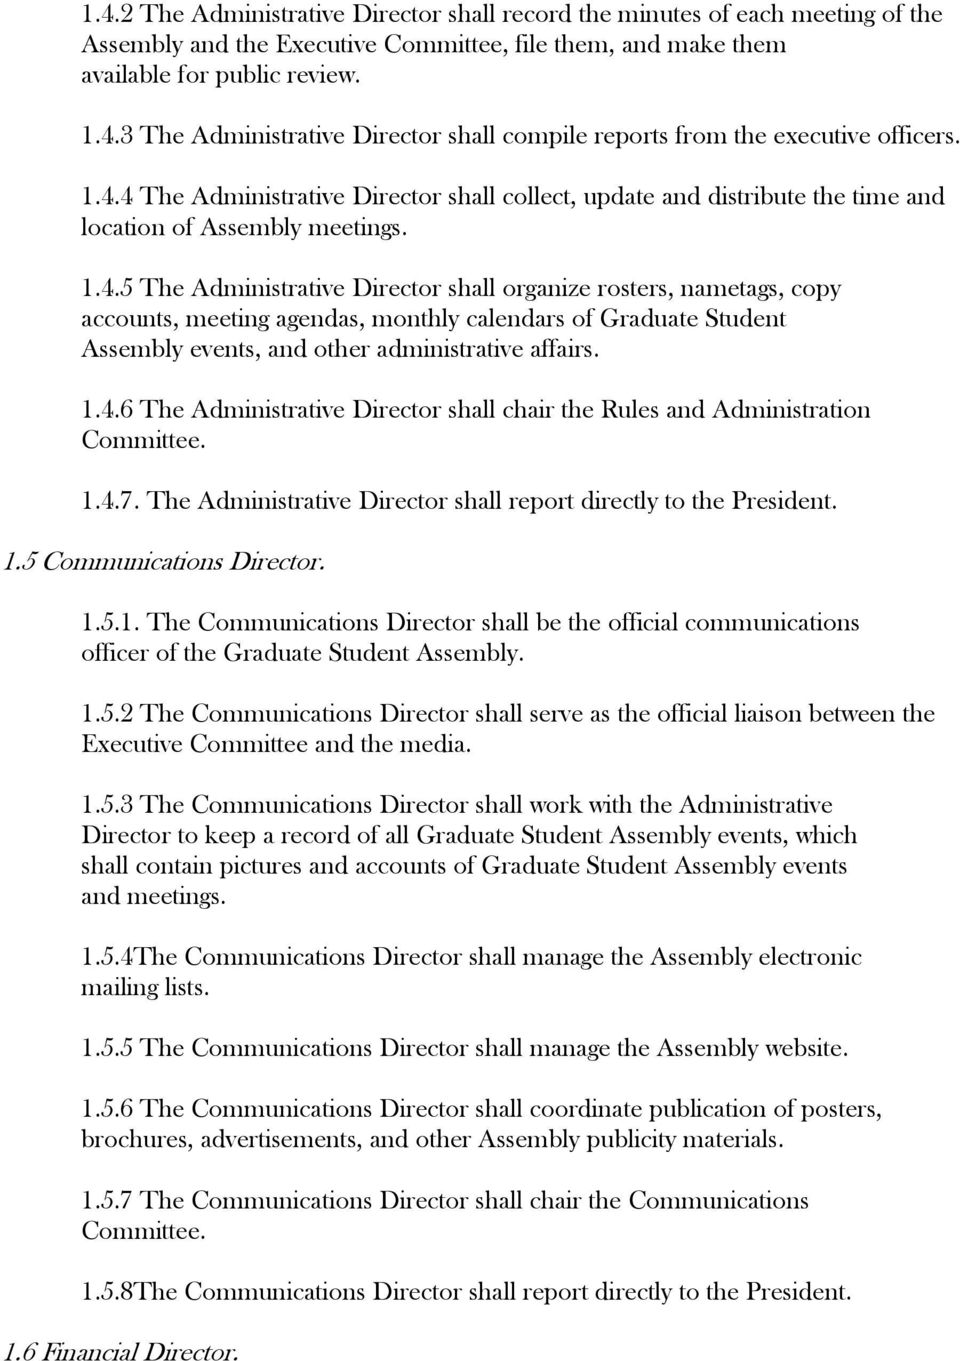 1.4.6 The Administrative Director shall chair the Rules and Administration Committee. 1.4.7. The Administrative Director shall report directly to the President. 1.5 Communications Director. 1.5.1. The Communications Director shall be the official communications officer of the Graduate Student Assembly.